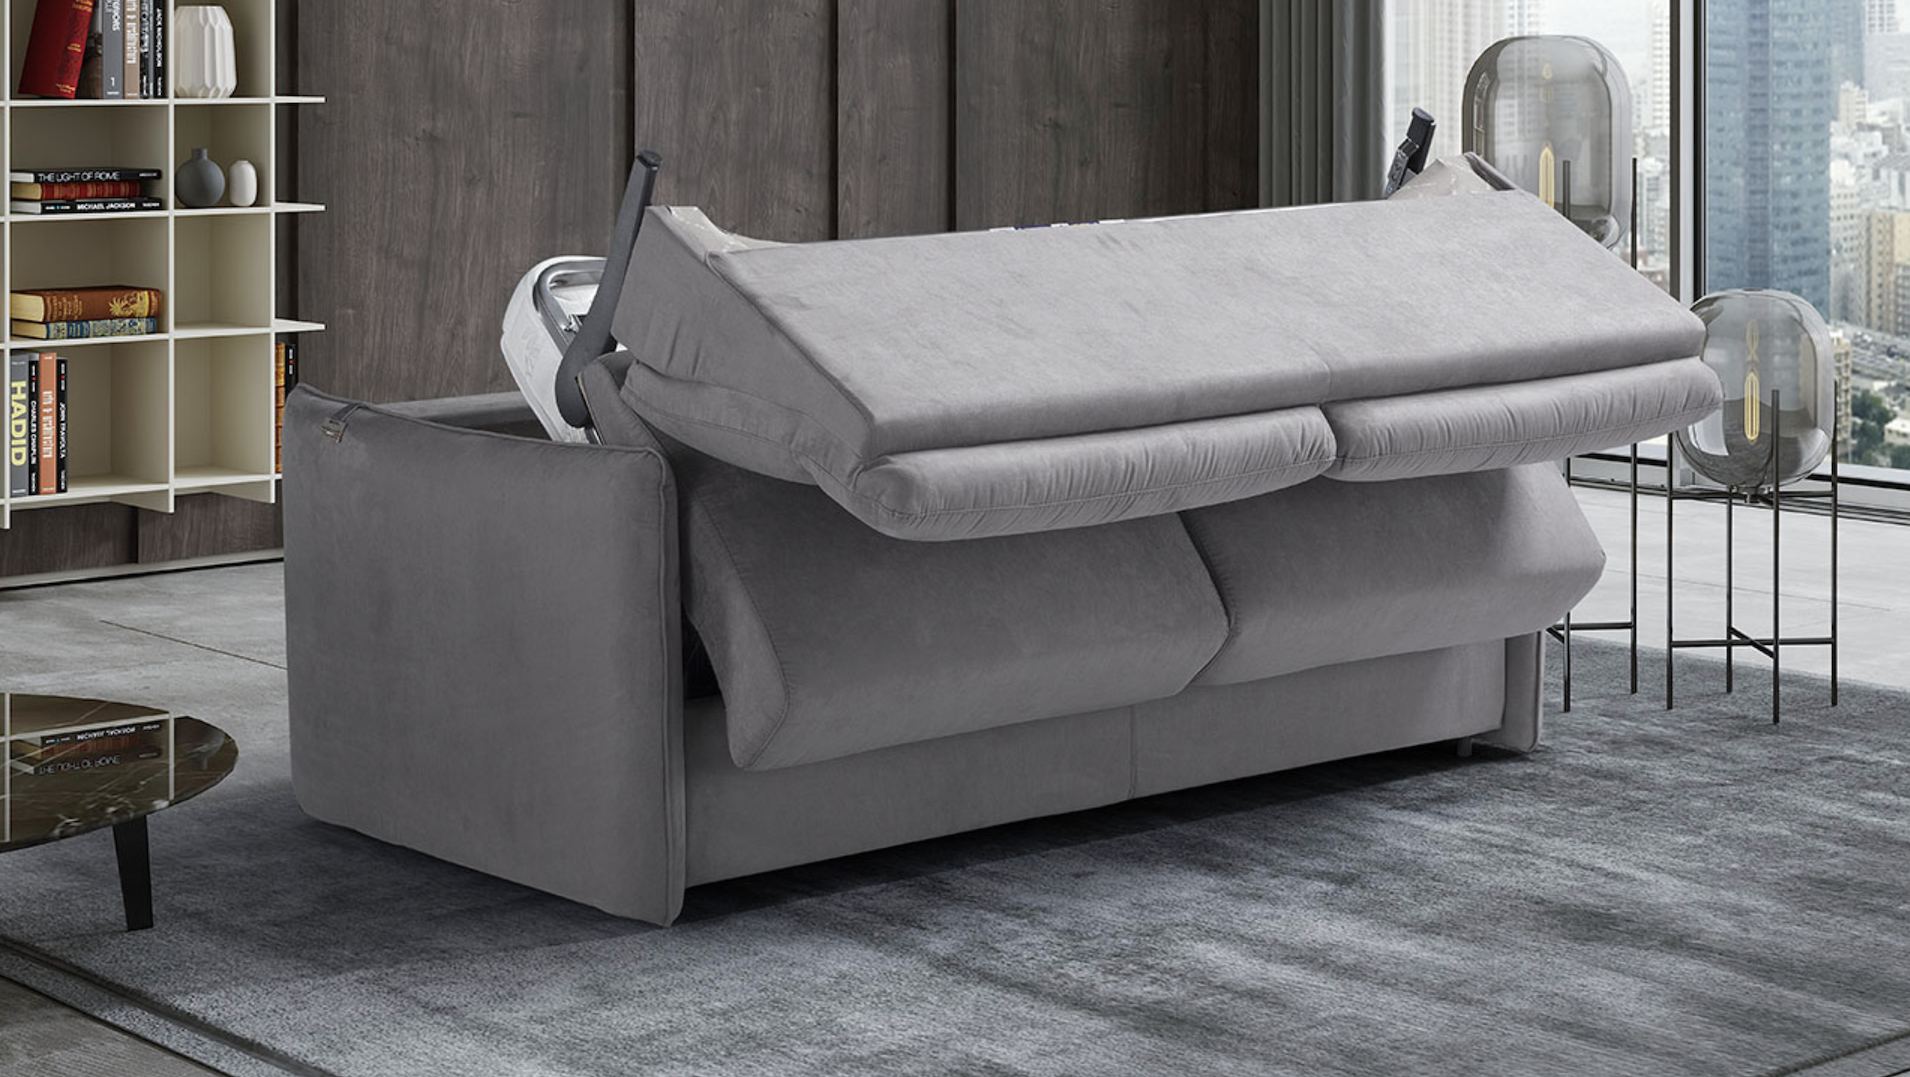 AIMEE Italian Crafted 3 Seat Sofa Bed in PLAZA SILVER RRP £1979 - Image 8 of 9